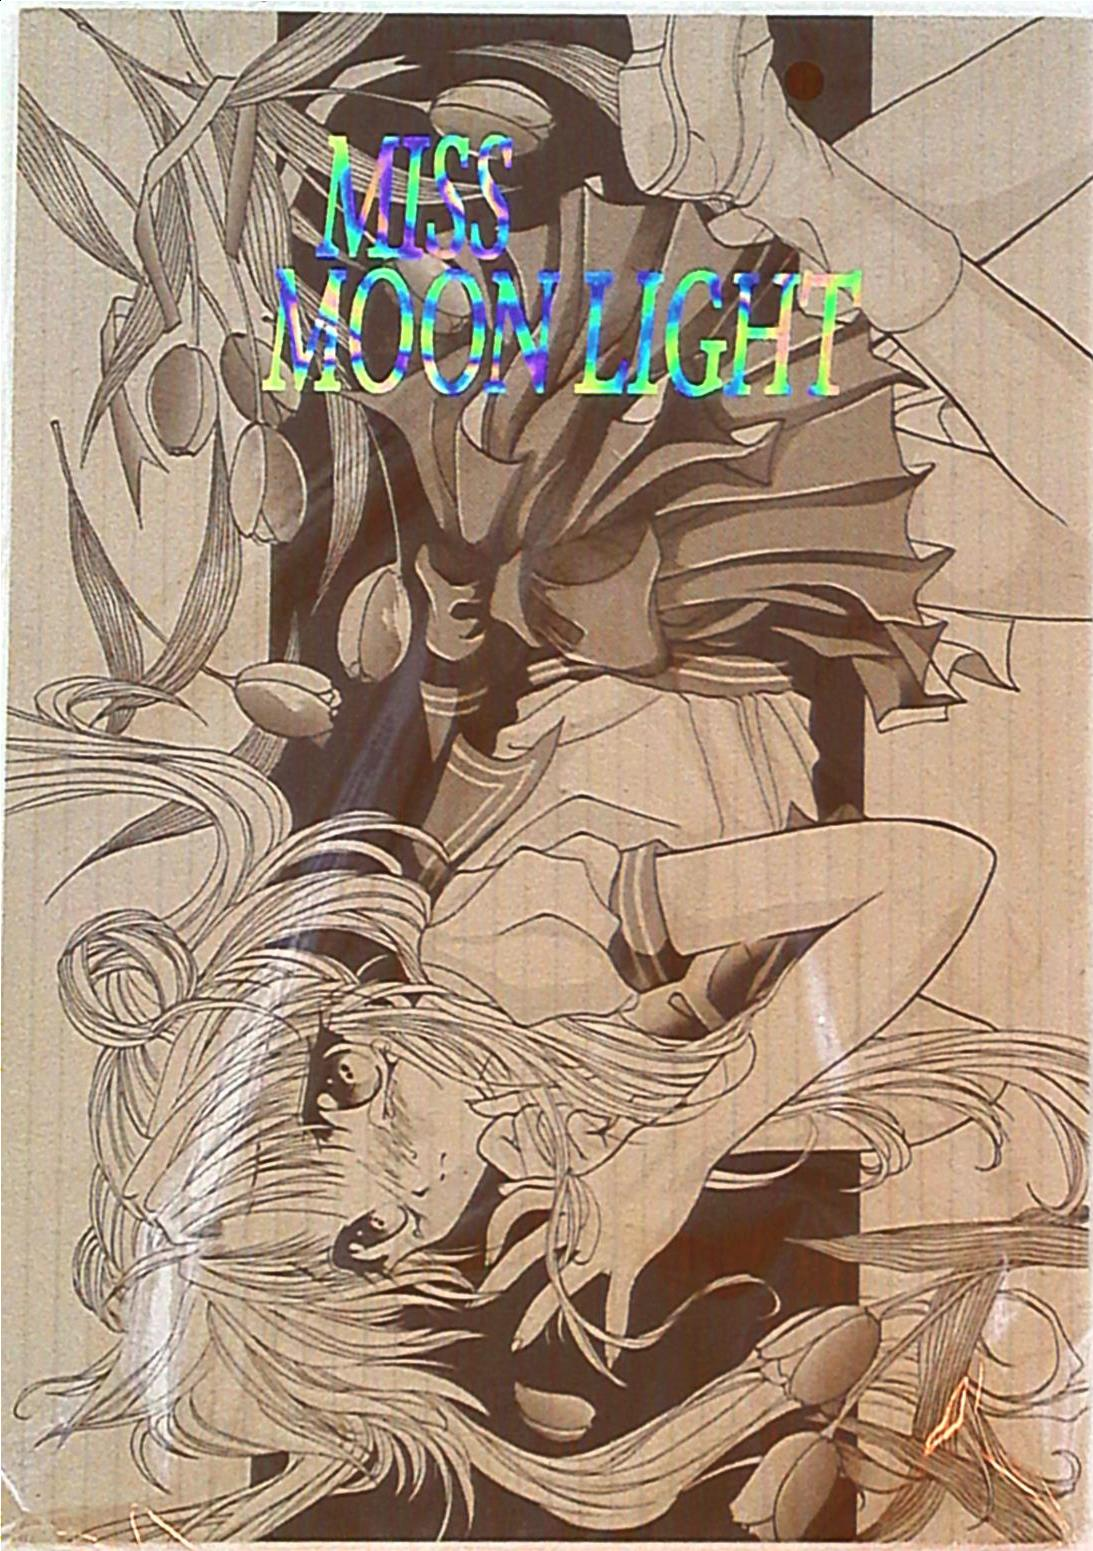 [Hentai] Doujinshi - Sailor Moon (「美少女戦士セーラームーン」 MISS MOON LIGHT) / CHRONOLOG